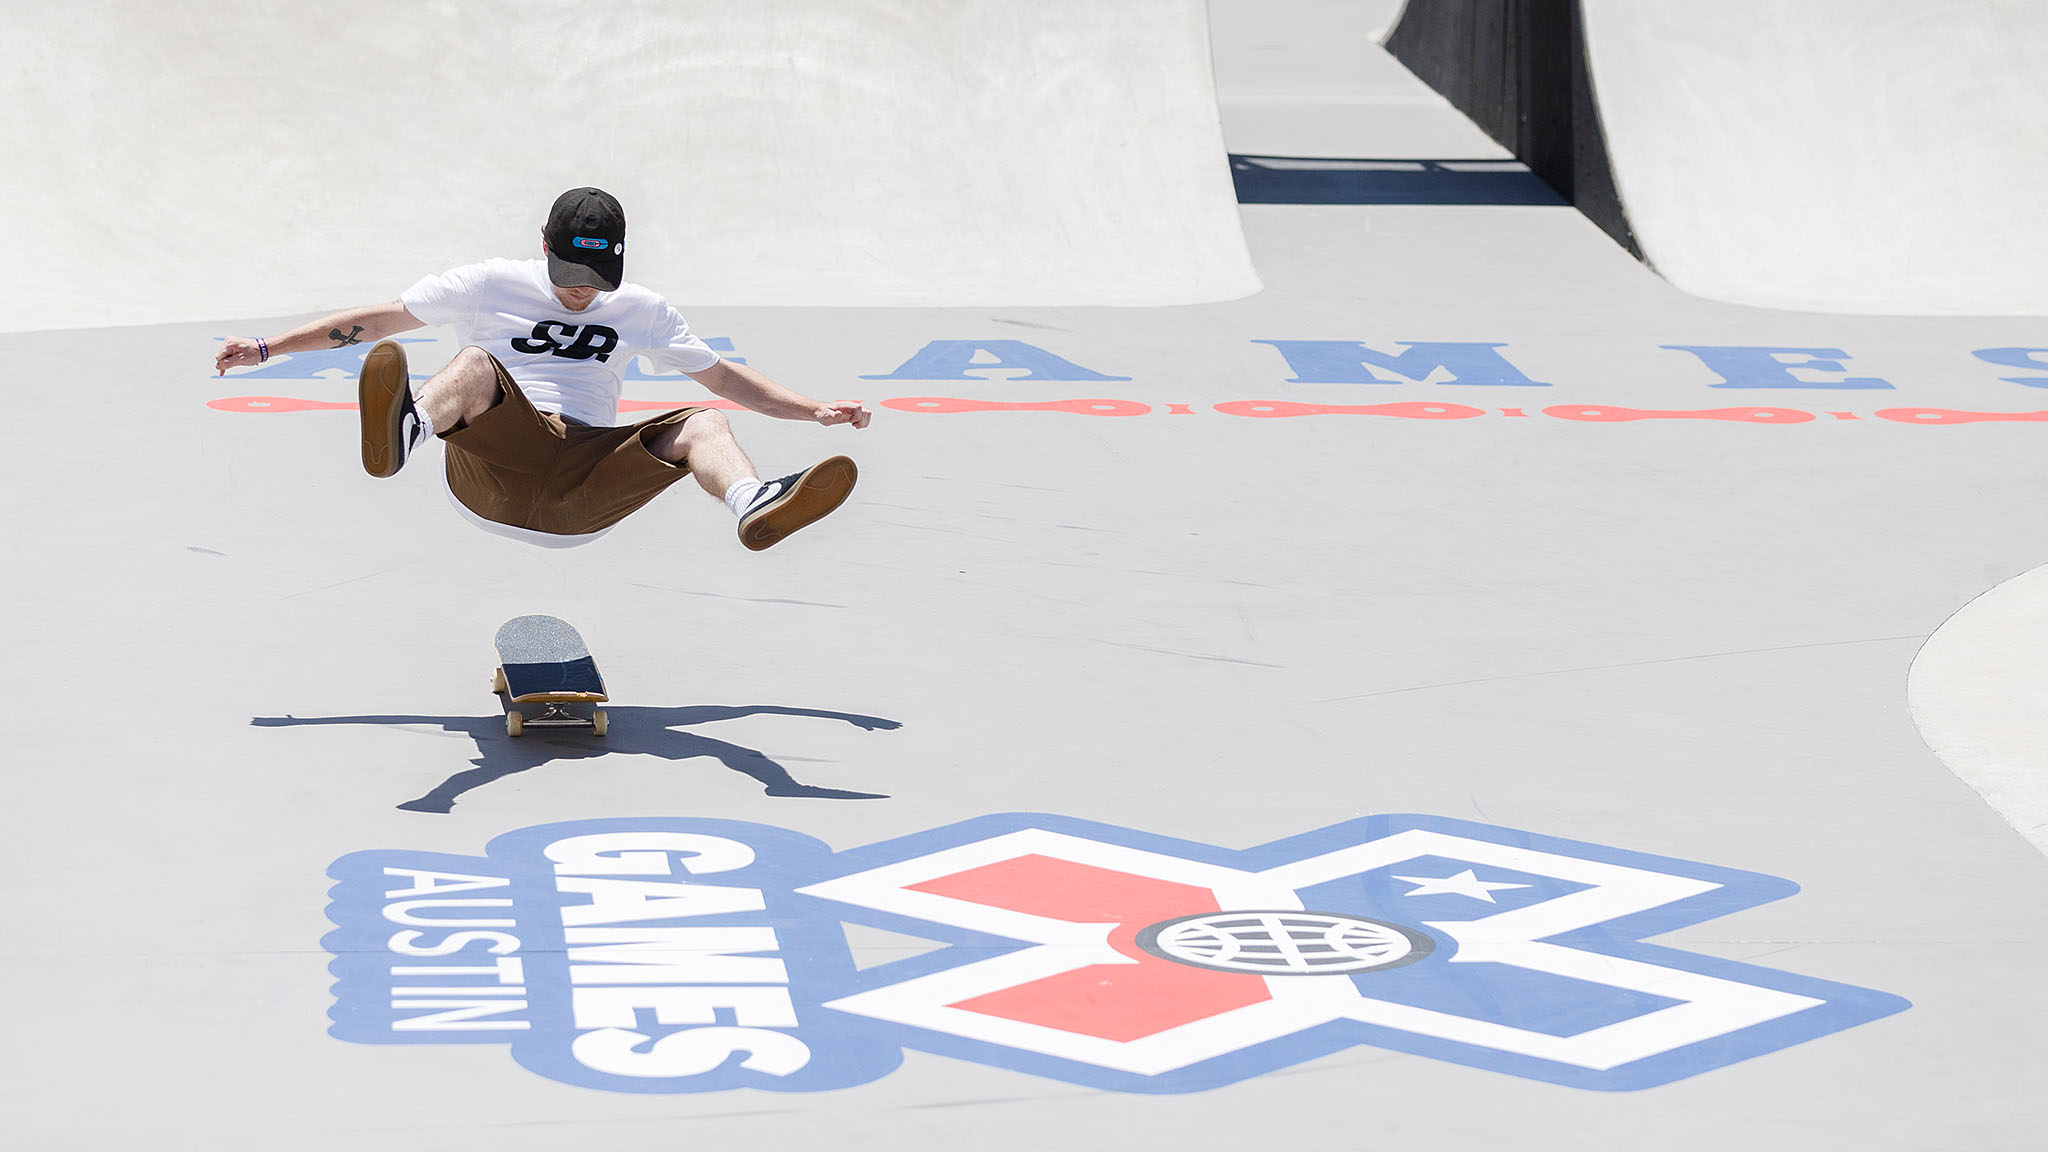 Men's Skateboard Park final ~ Ben Raybourn